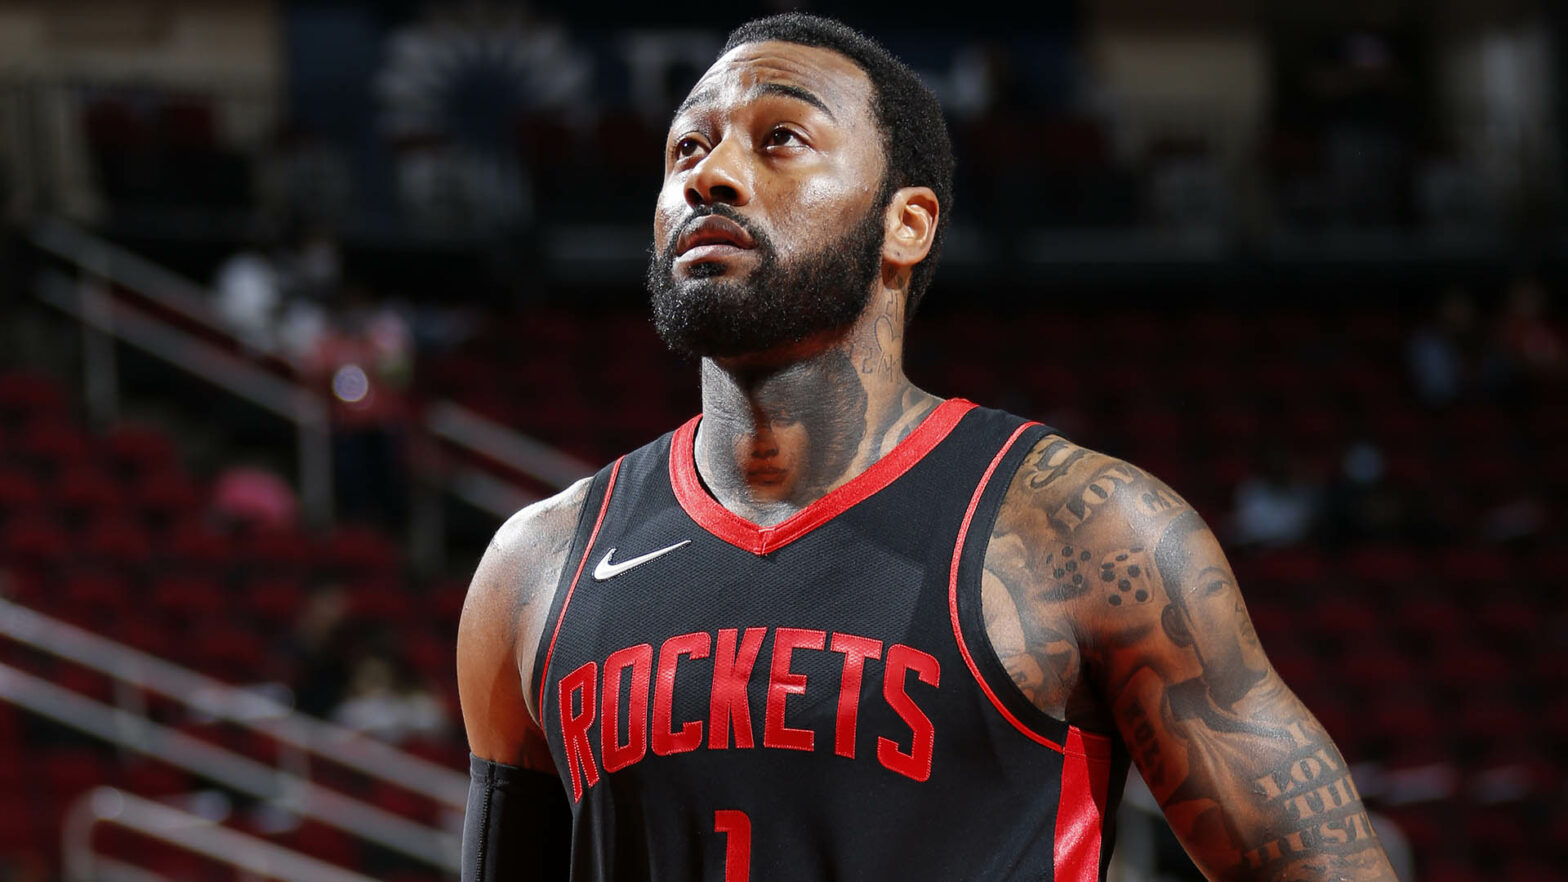 Report: John Wall, Rockets working together on trade | NBA.com